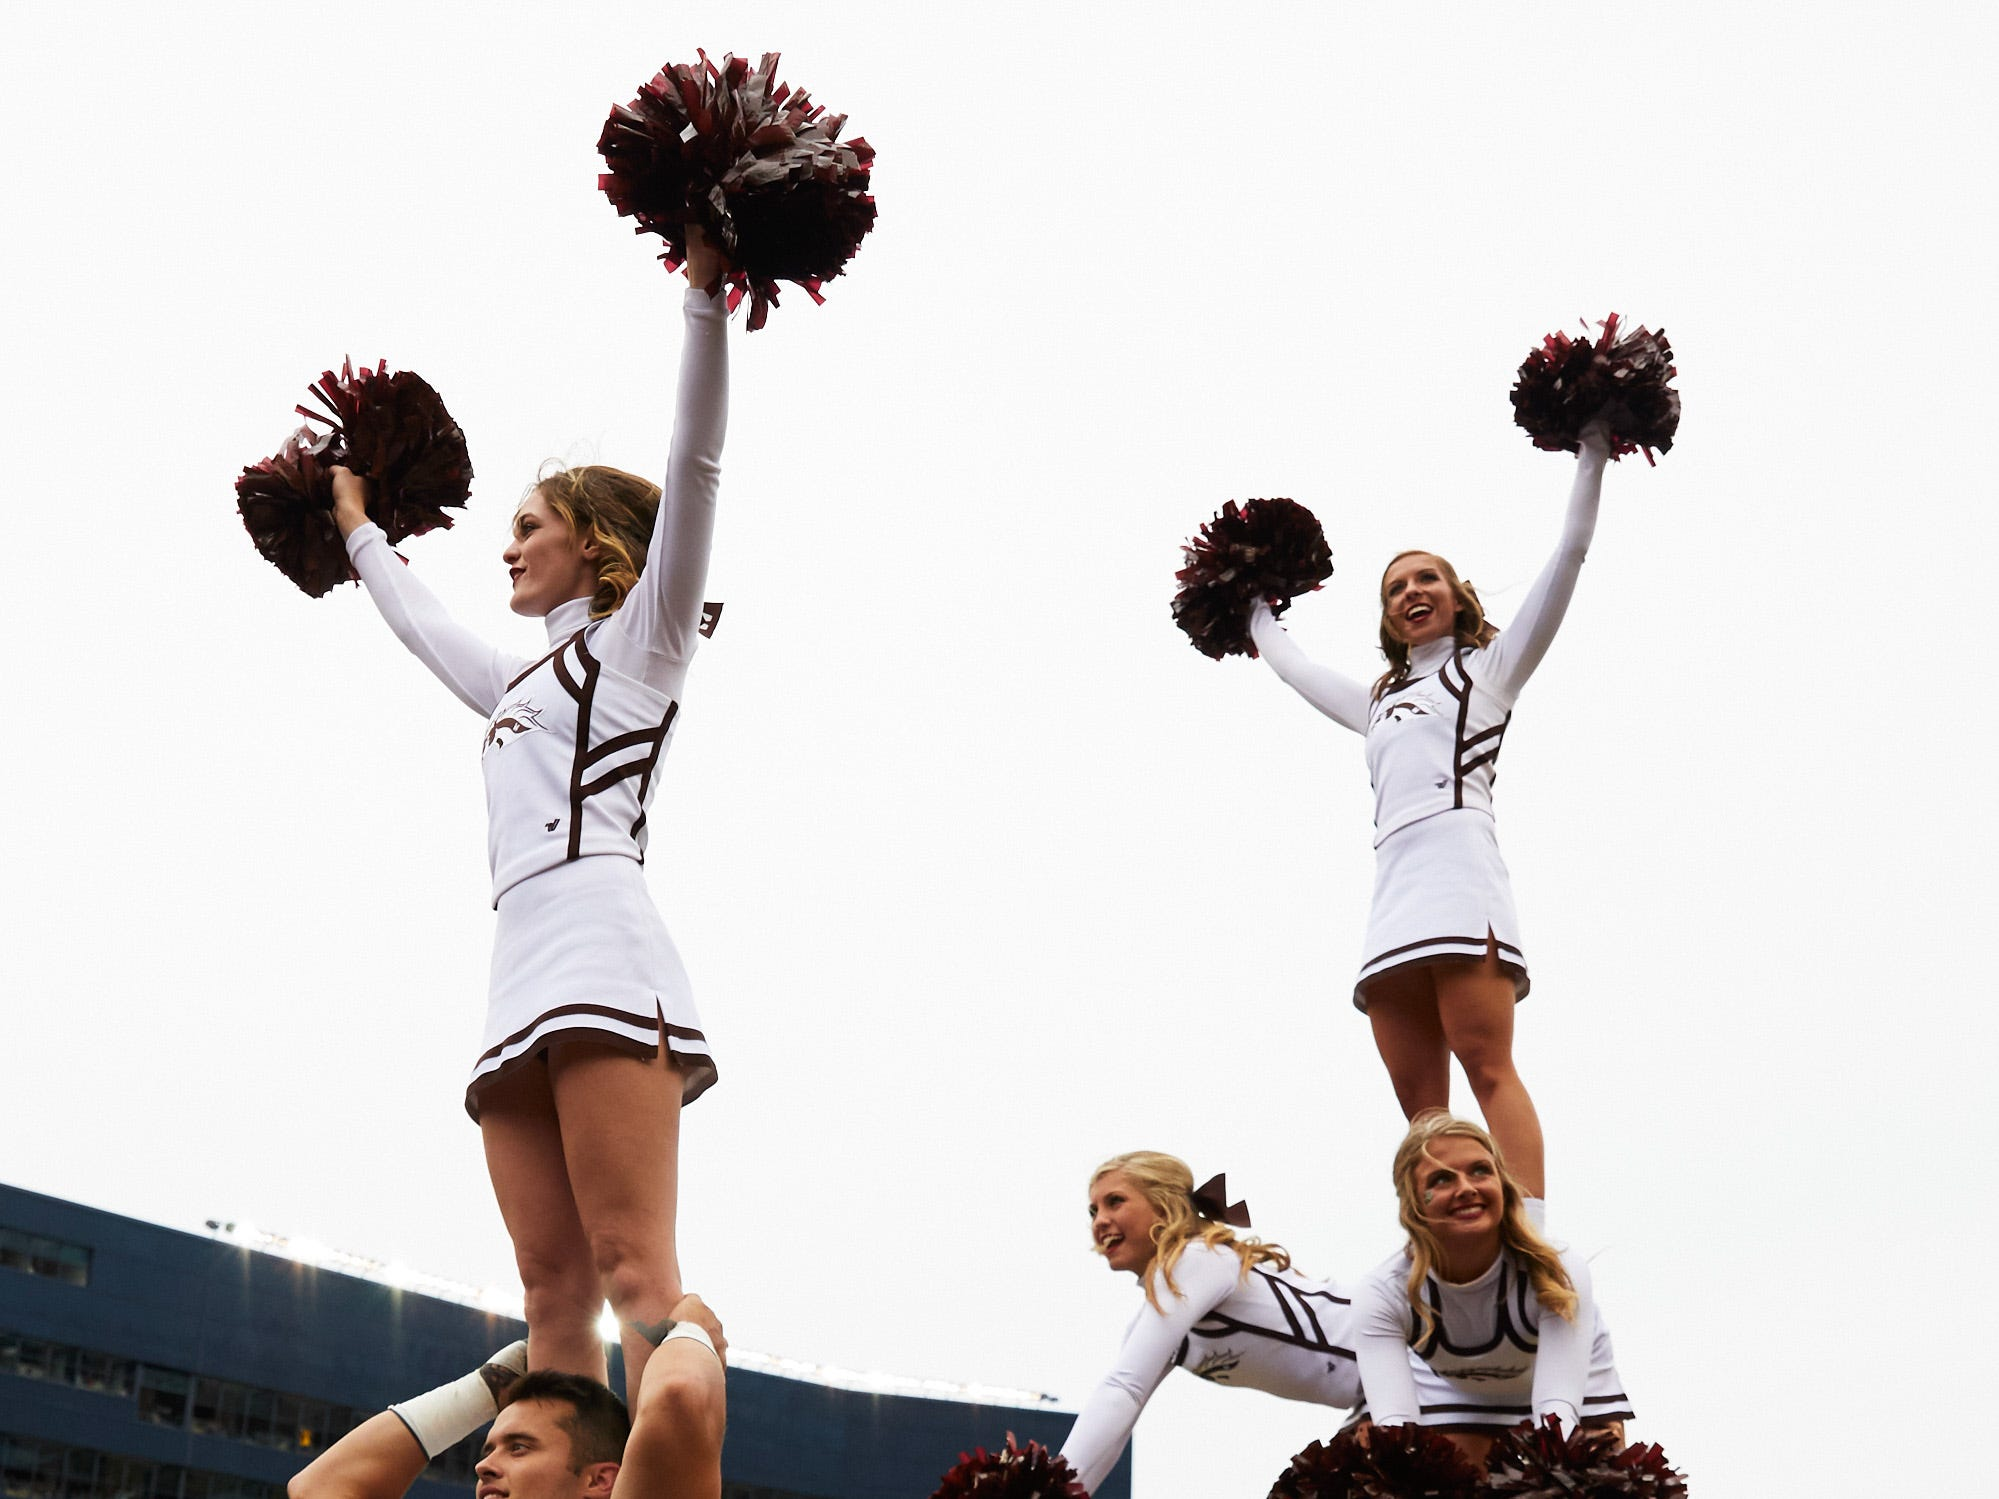 Sep 8, 2018; Ann Arbor, MI, USA; Western Michigan Broncos cheerleaders on the sideline during the second half against the Michigan Wolverines at Michigan Stadium. Mandatory Credit: Rick Osentoski-USA TODAY Sports